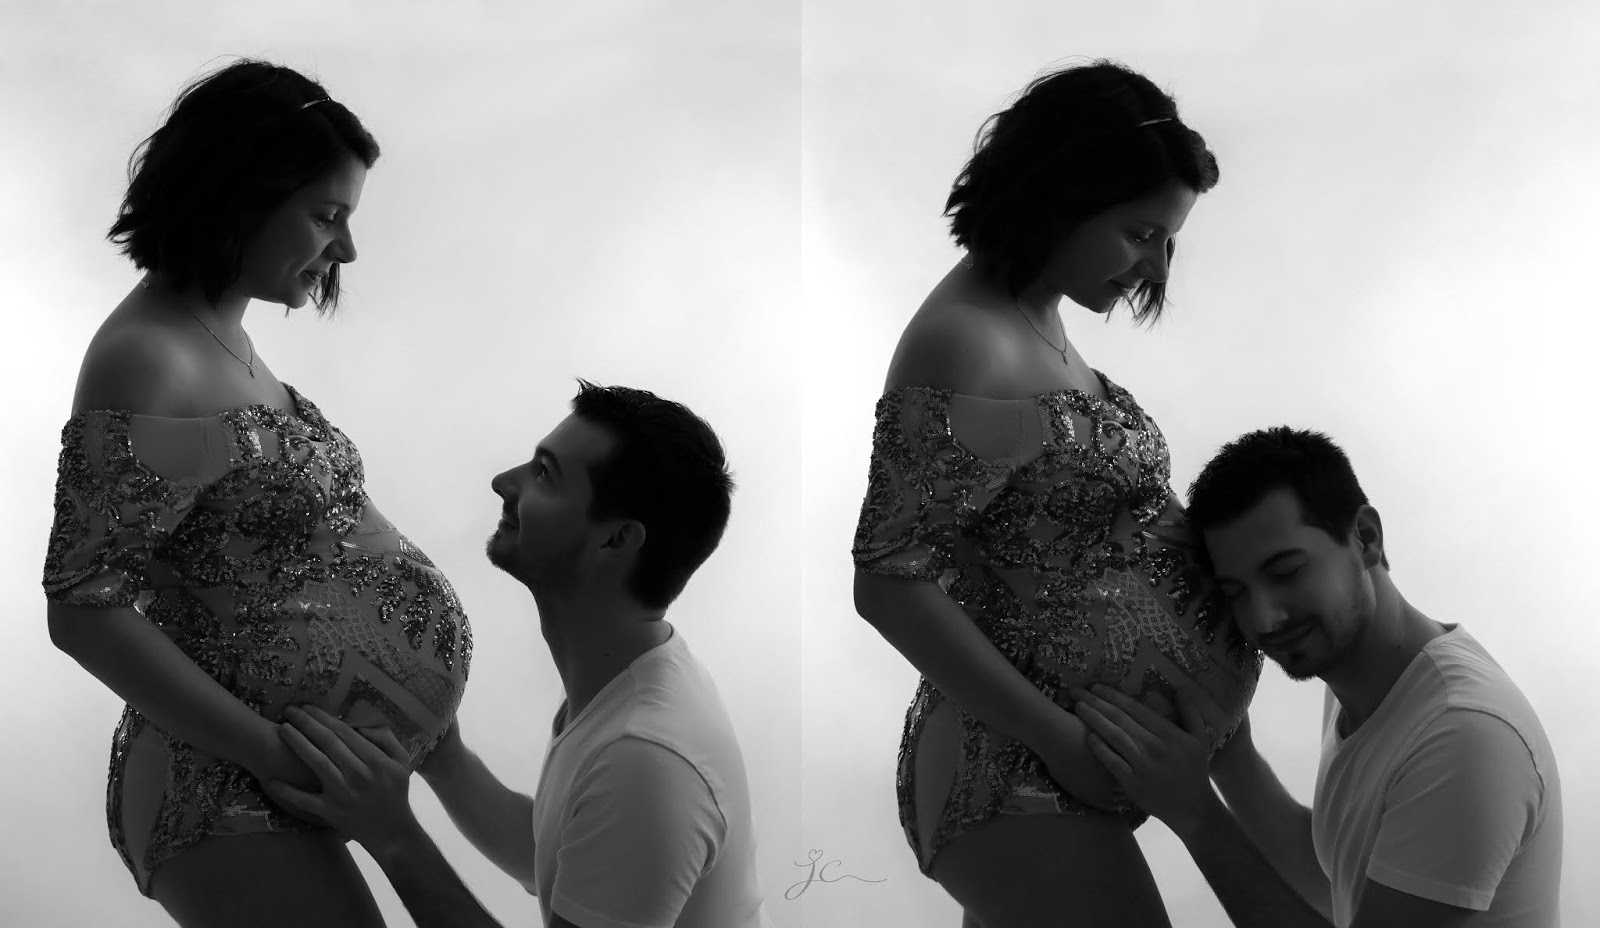 shooting photo grossesse enceinte professionnel studio maternité photographe julie charles les gommettes de melo